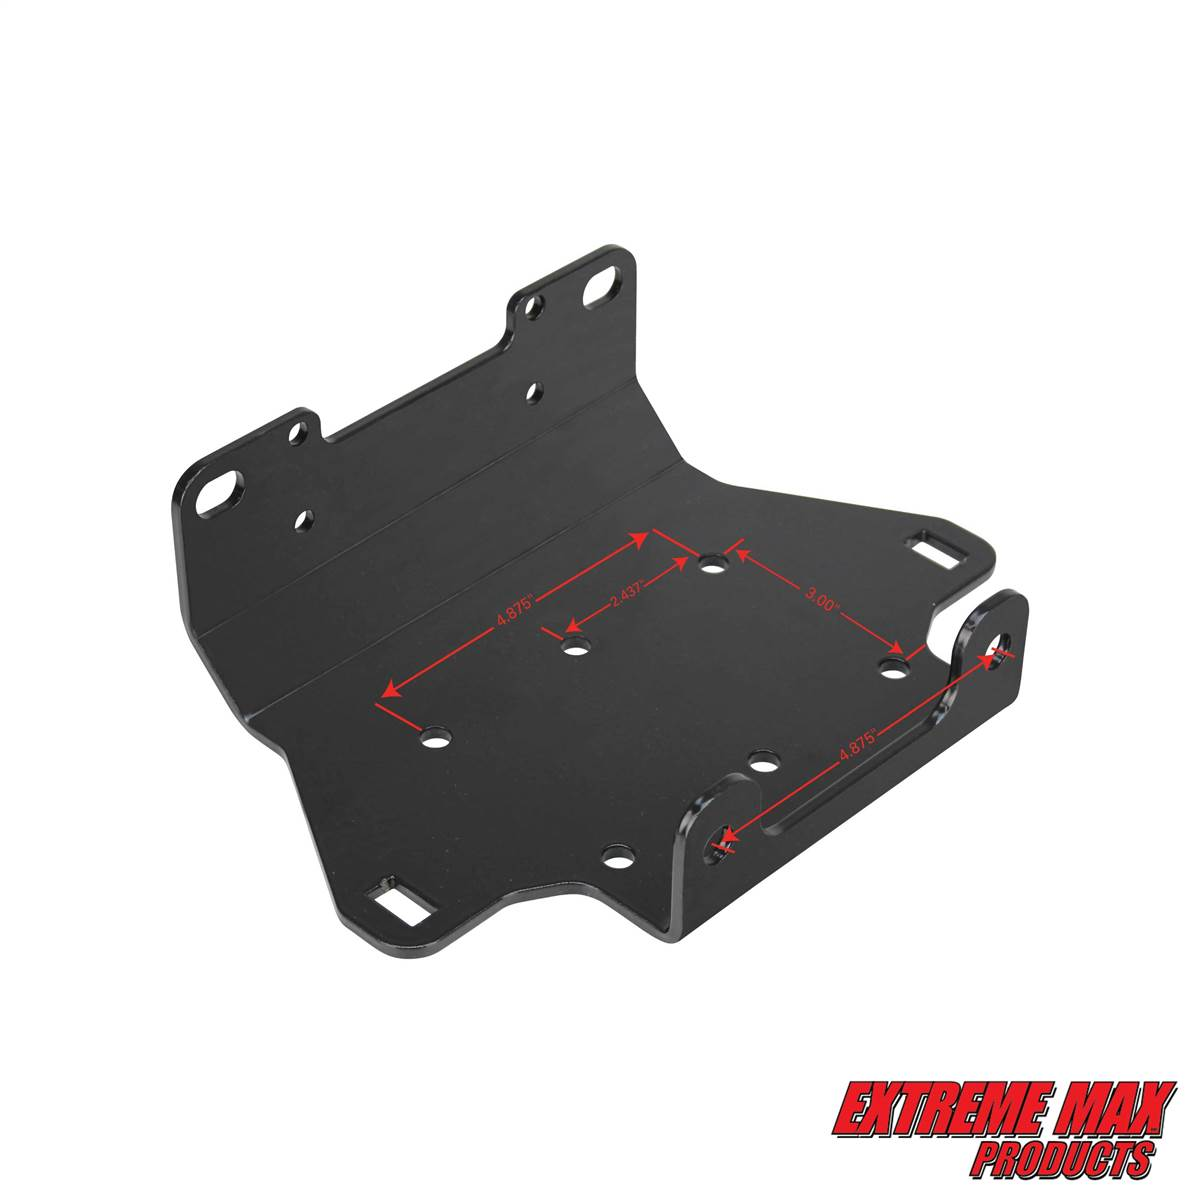 Extreme Max 56003133 Atv Winch Mount For Yamaha Grizzly 550 700 Wiring Diagram On